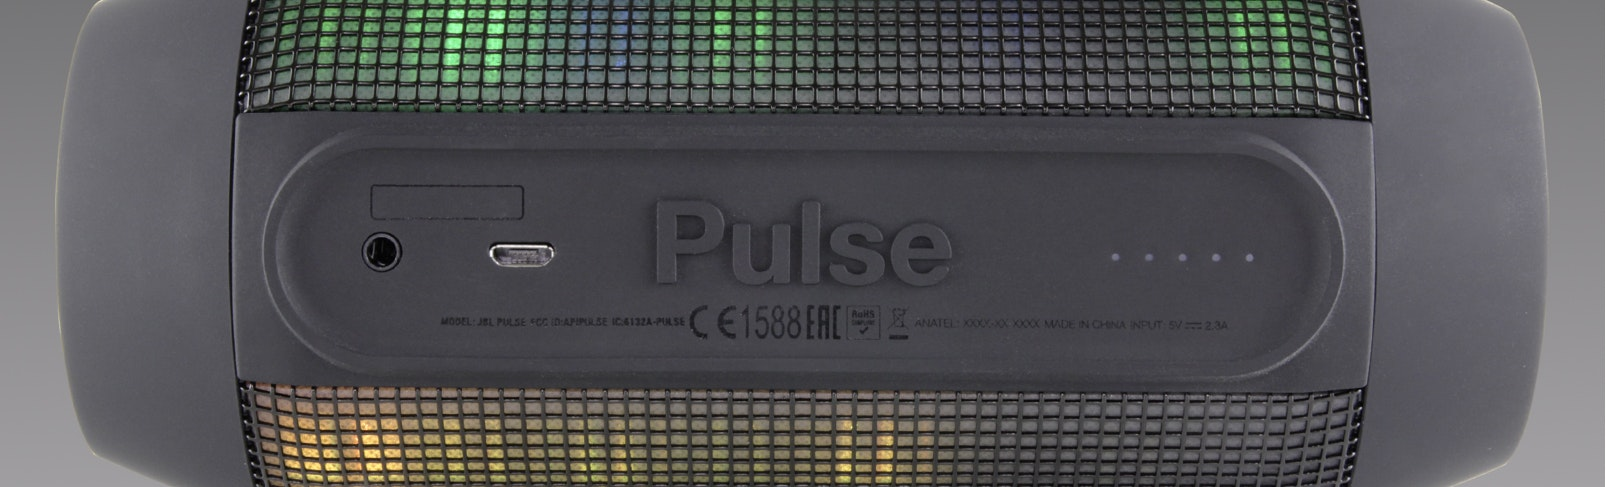 JBL Pulse Wireless Speaker